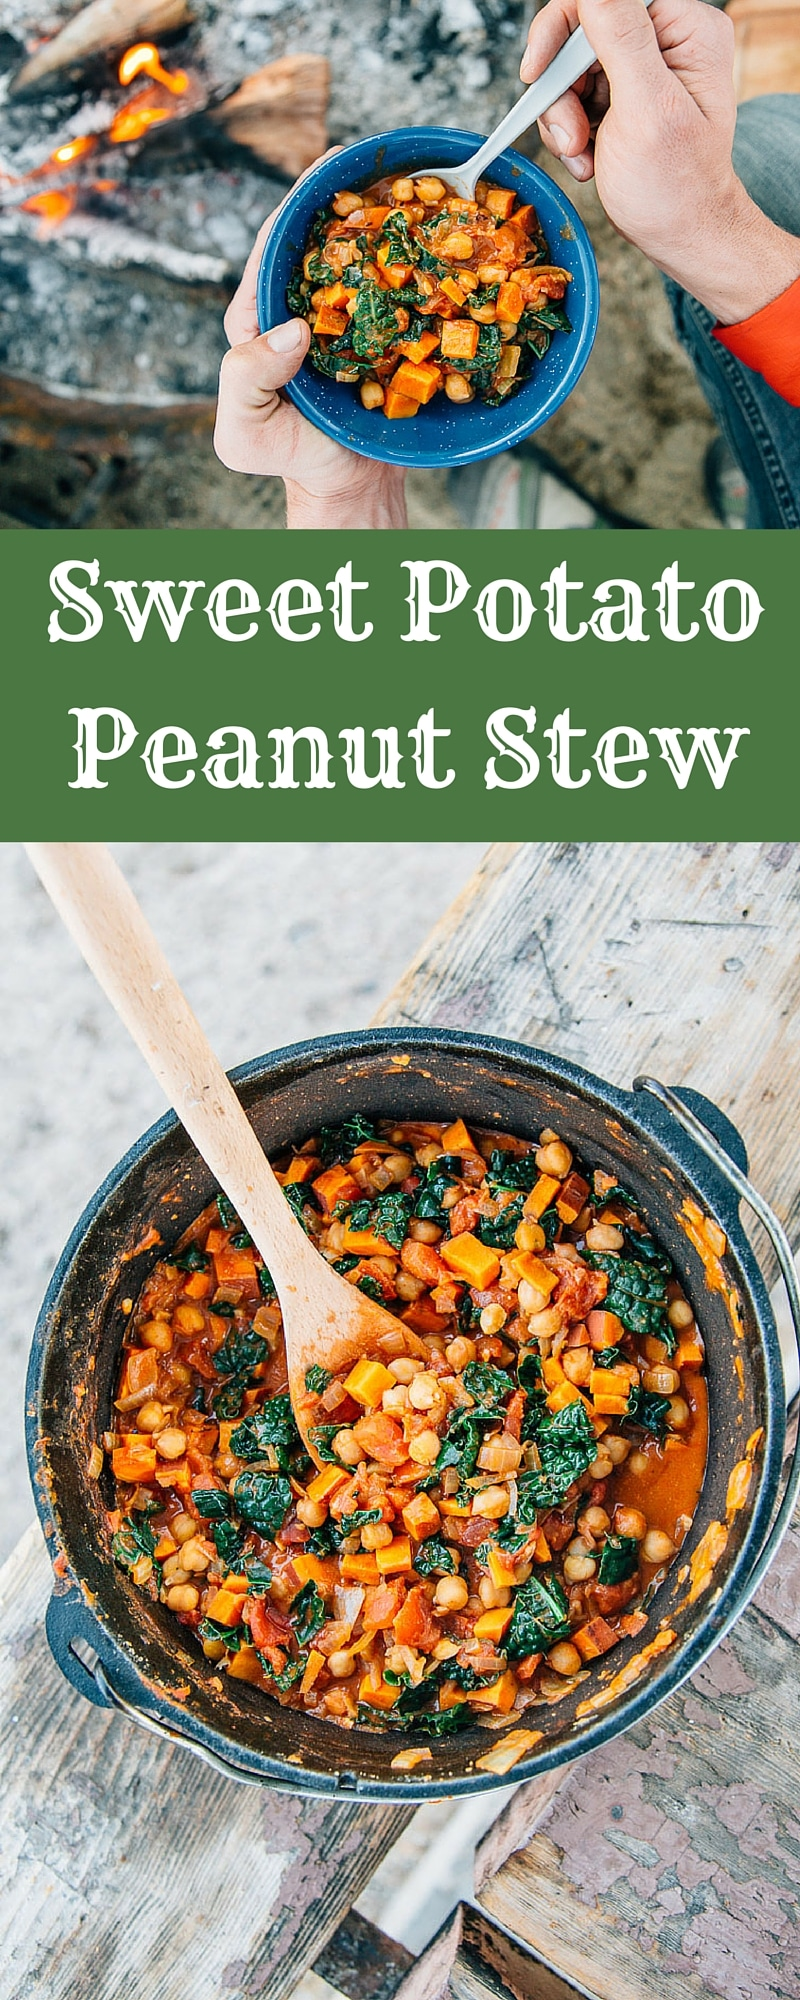 Hearty, healthy, and satisfying - this #vegan Sweet Potato and Peanut Stew is a perfect meal to make over the campfire.